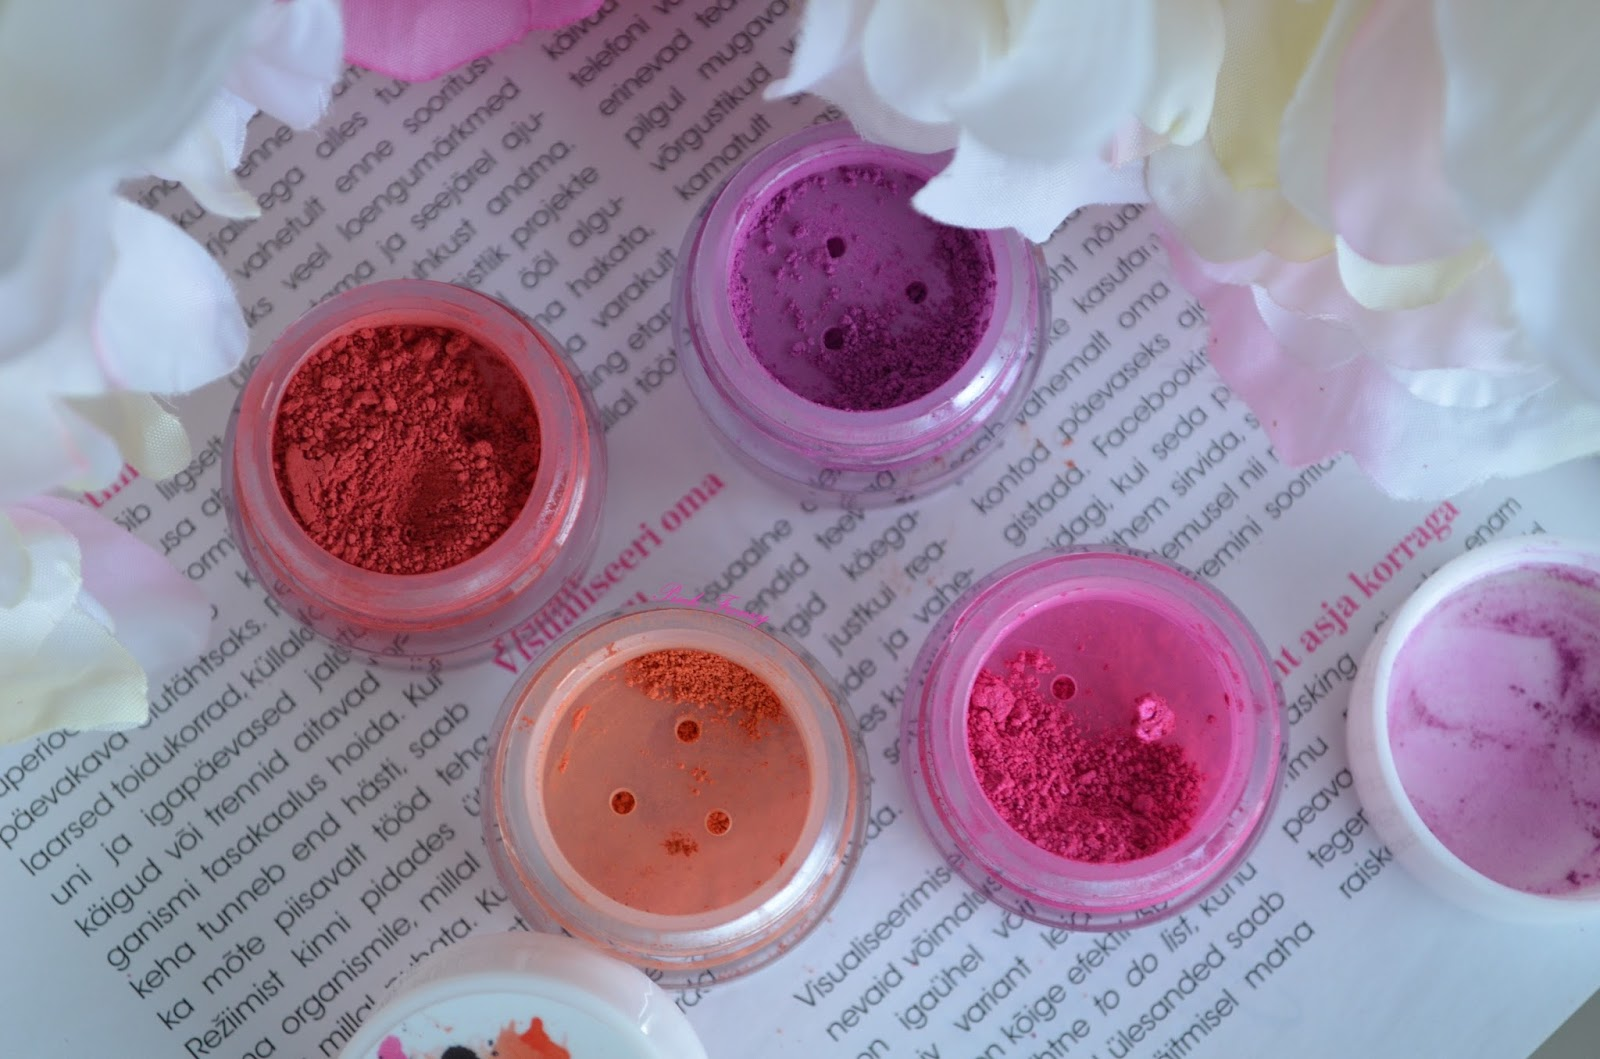 Pink Frenzy: Review: Concrete Minerals Eyeshadows & Pro